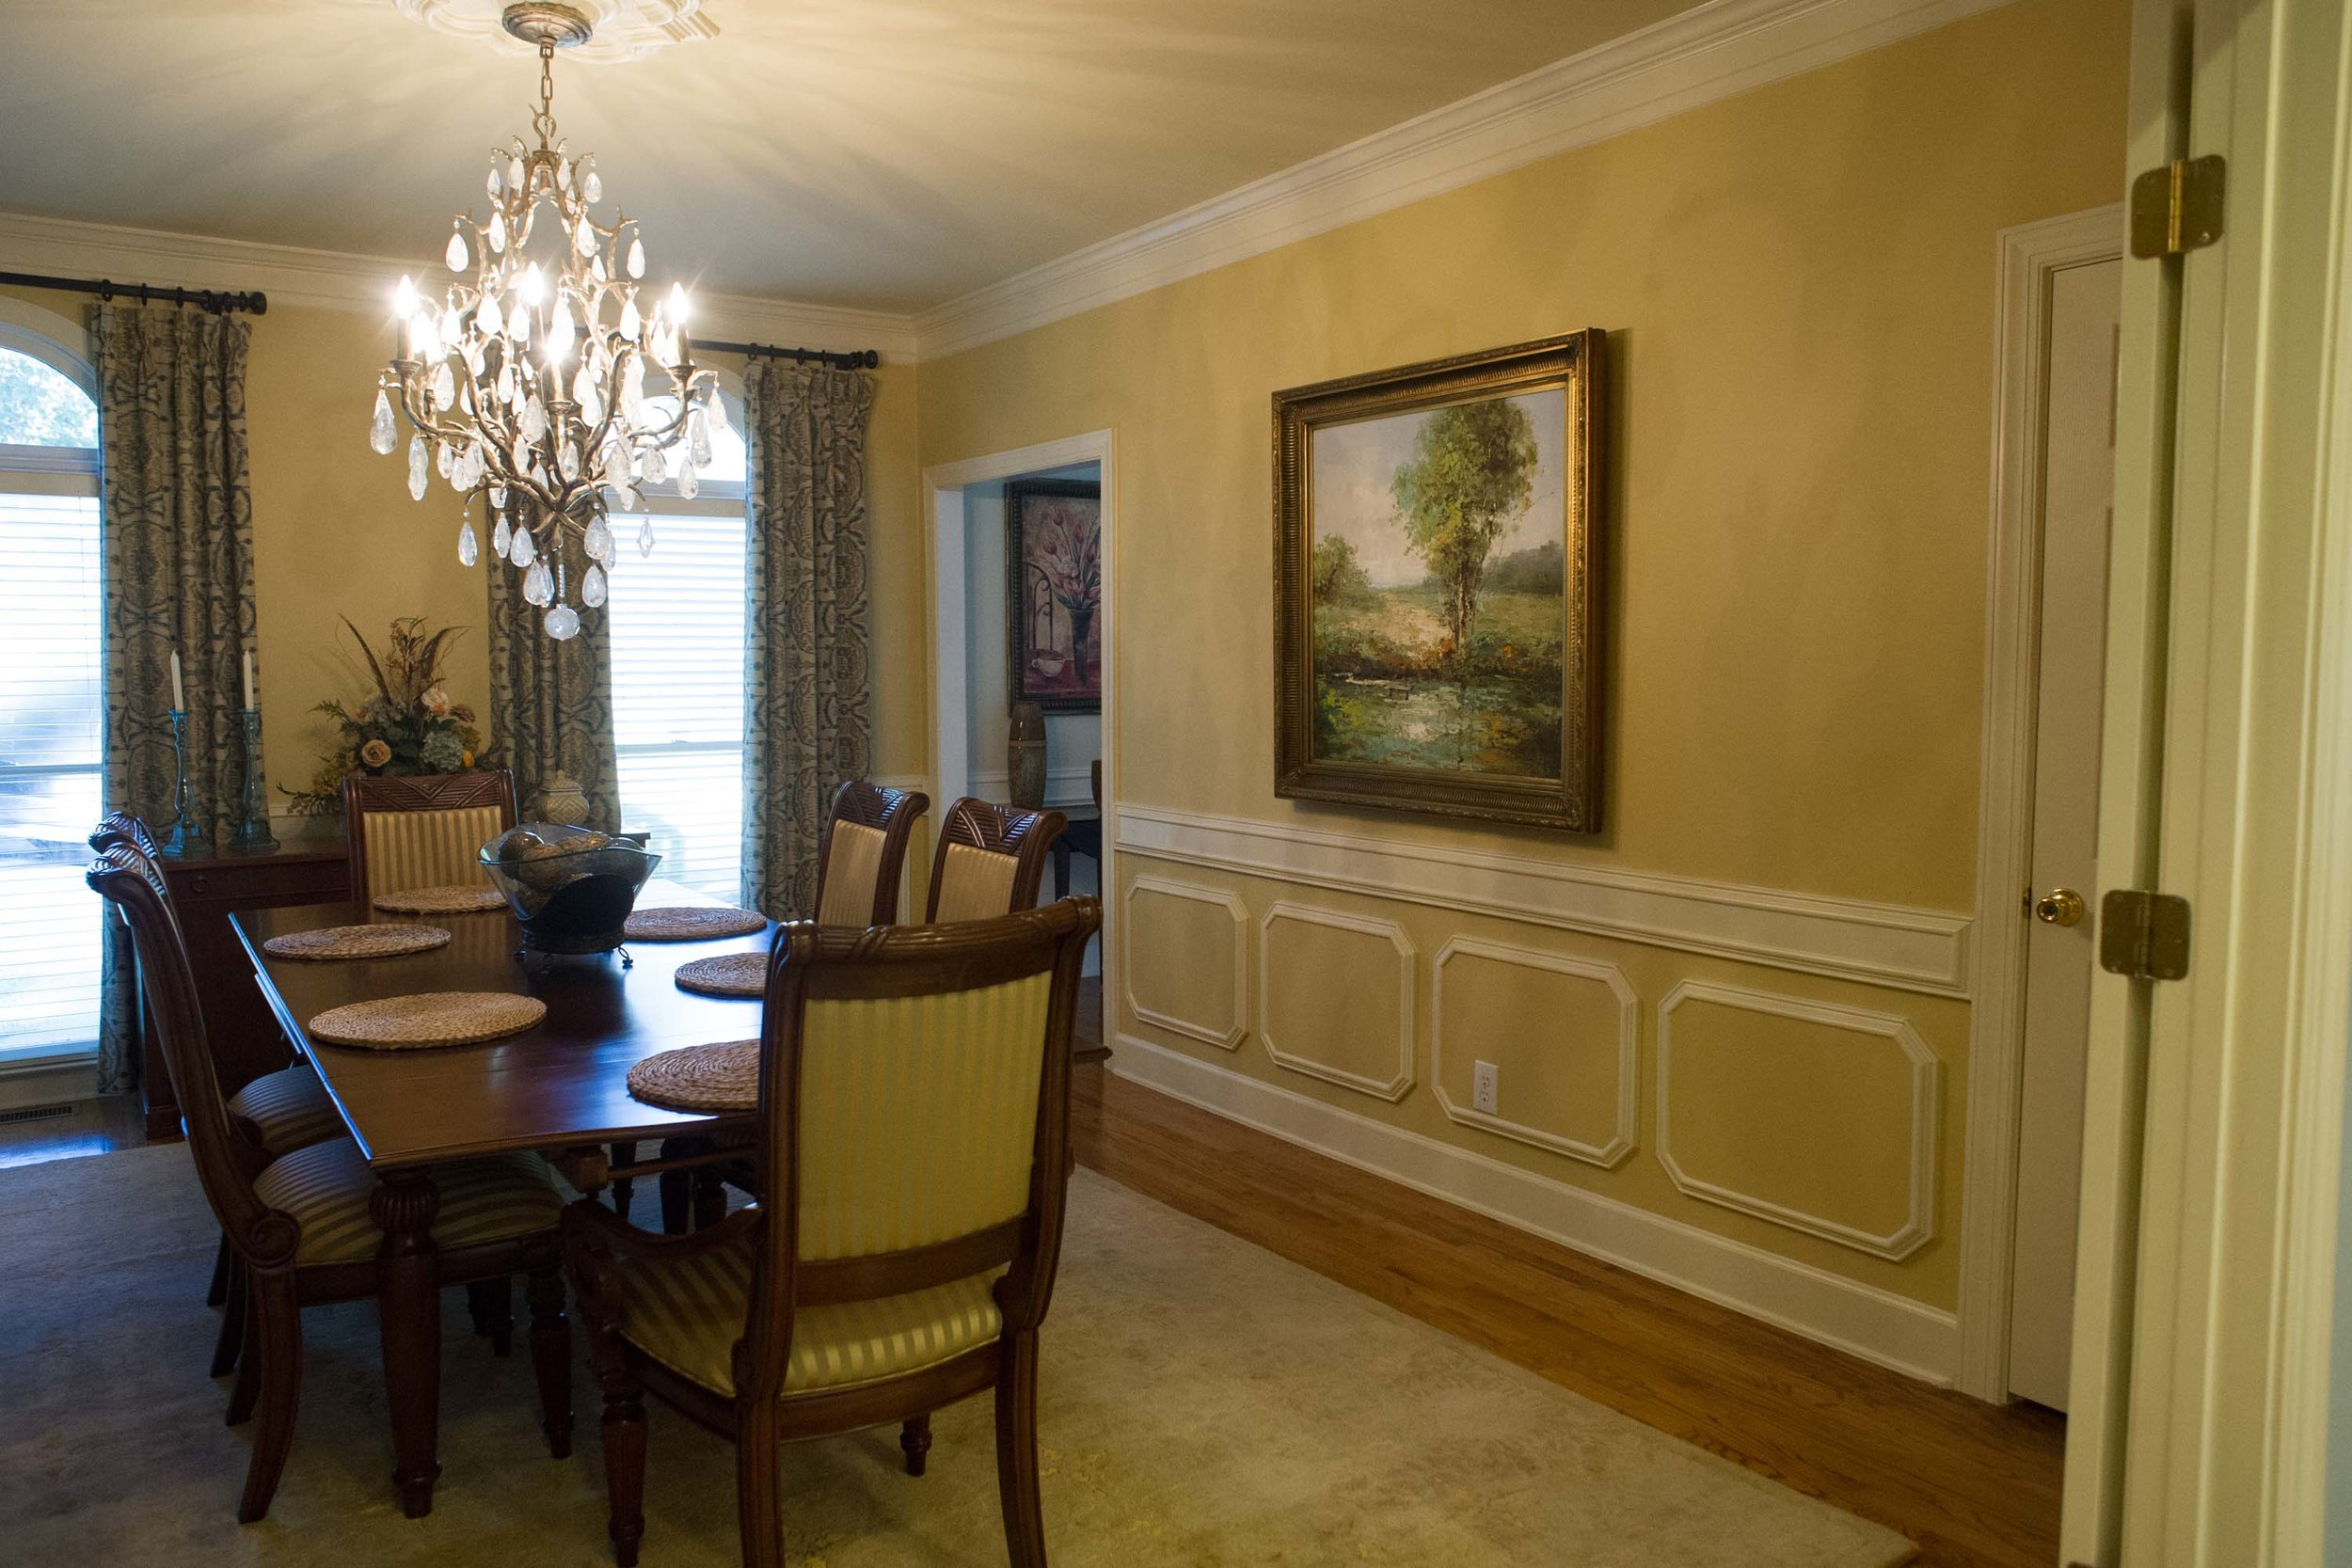 Dining room with wooden table, chairs, hardwood floor, chandelier and frame on the wall